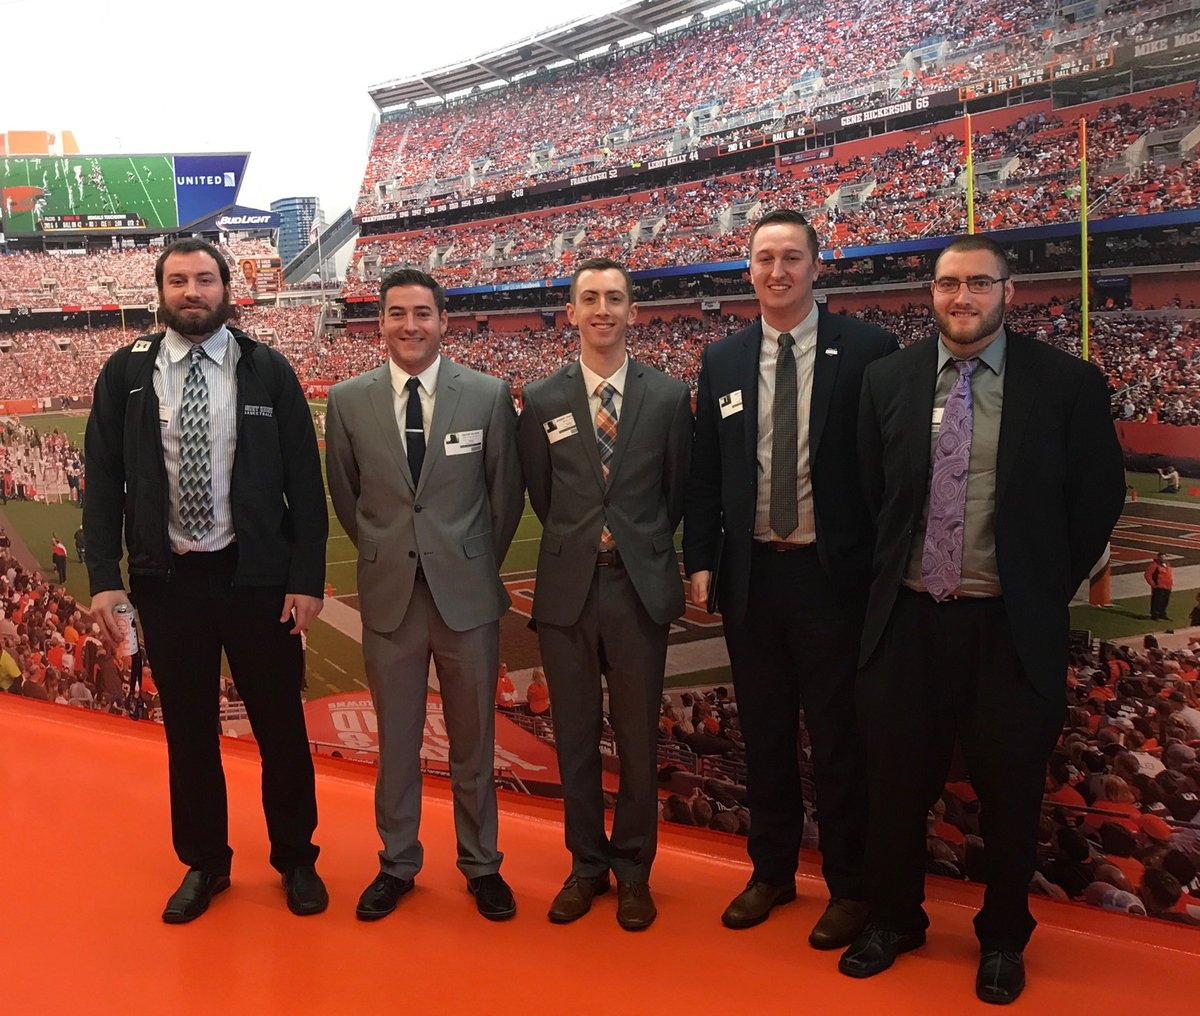 @mountunion Sport Biz students finish needs analysis meetings for @Browns sponsorship project. Back with proposals Dec 14. #realworld <br>http://pic.twitter.com/6rusjZO37u &ndash; à Cleveland Browns Training Facility